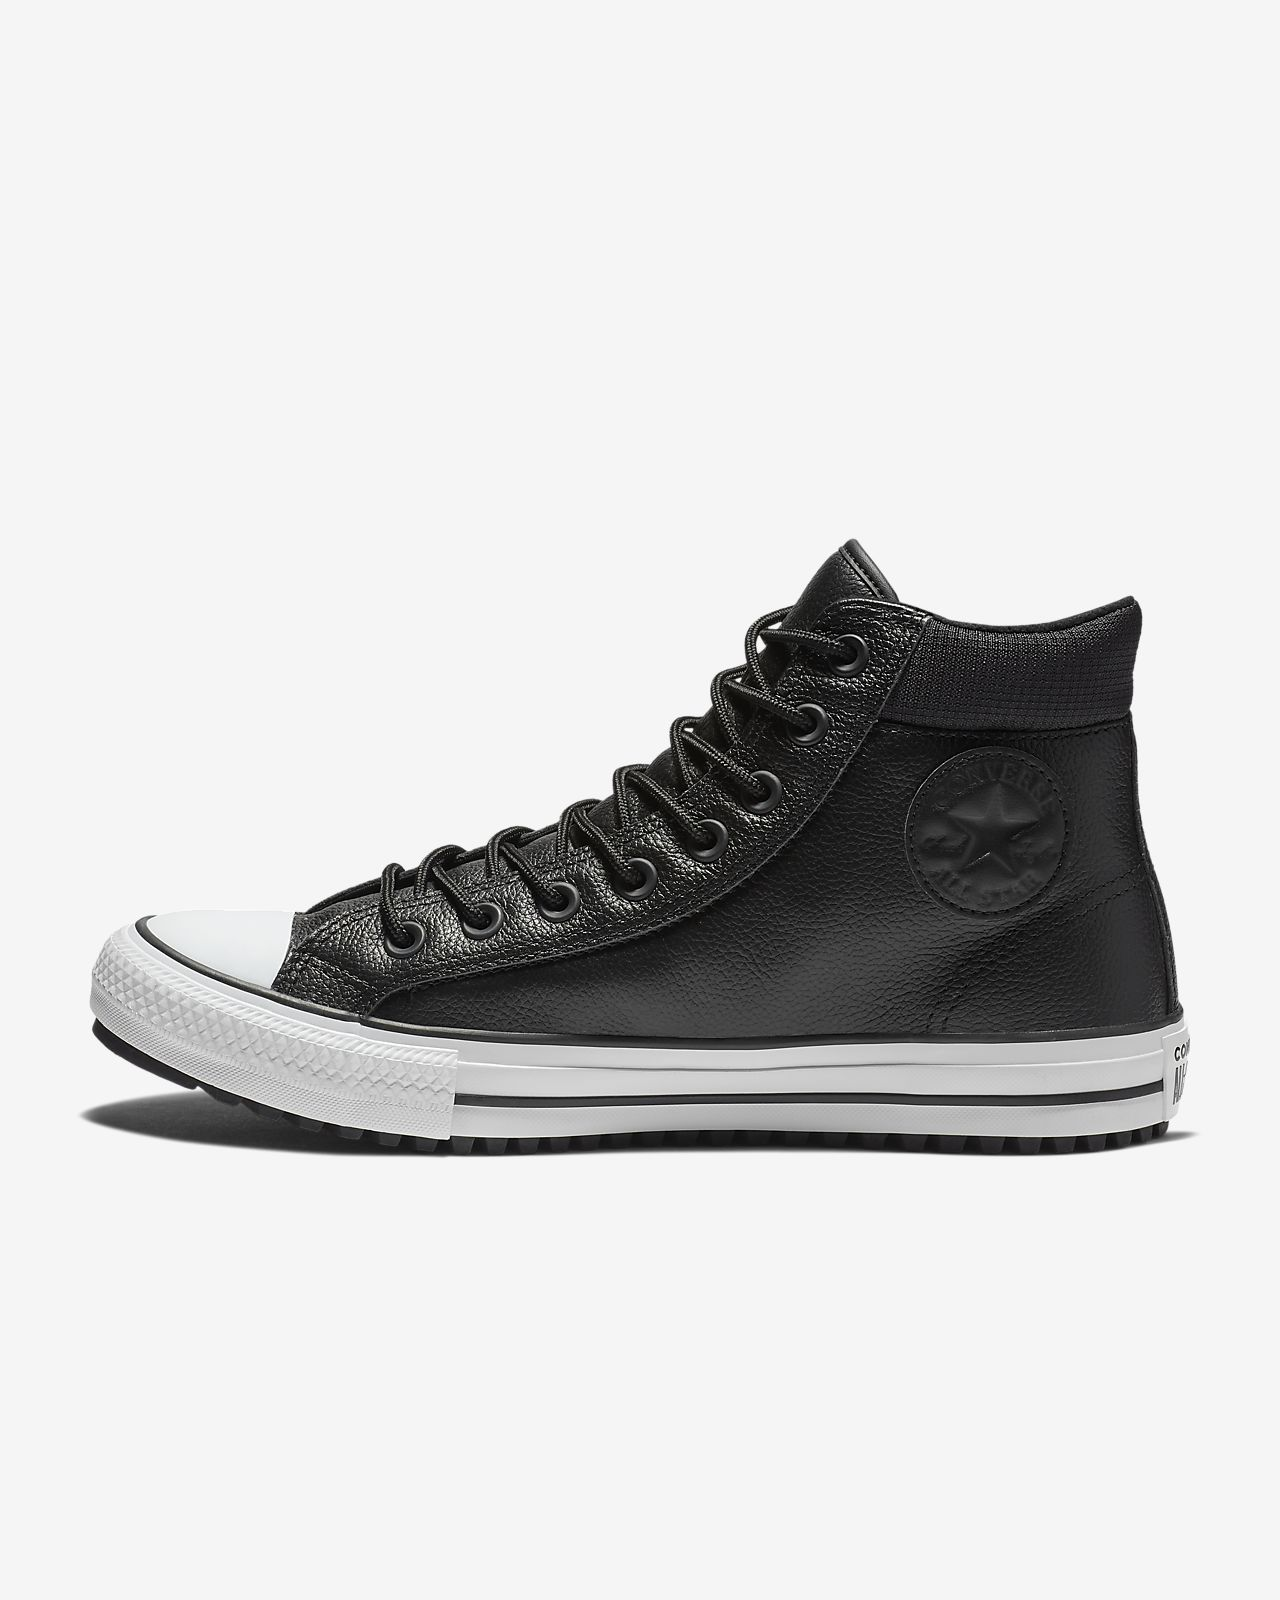 converse chuck taylor high top boot